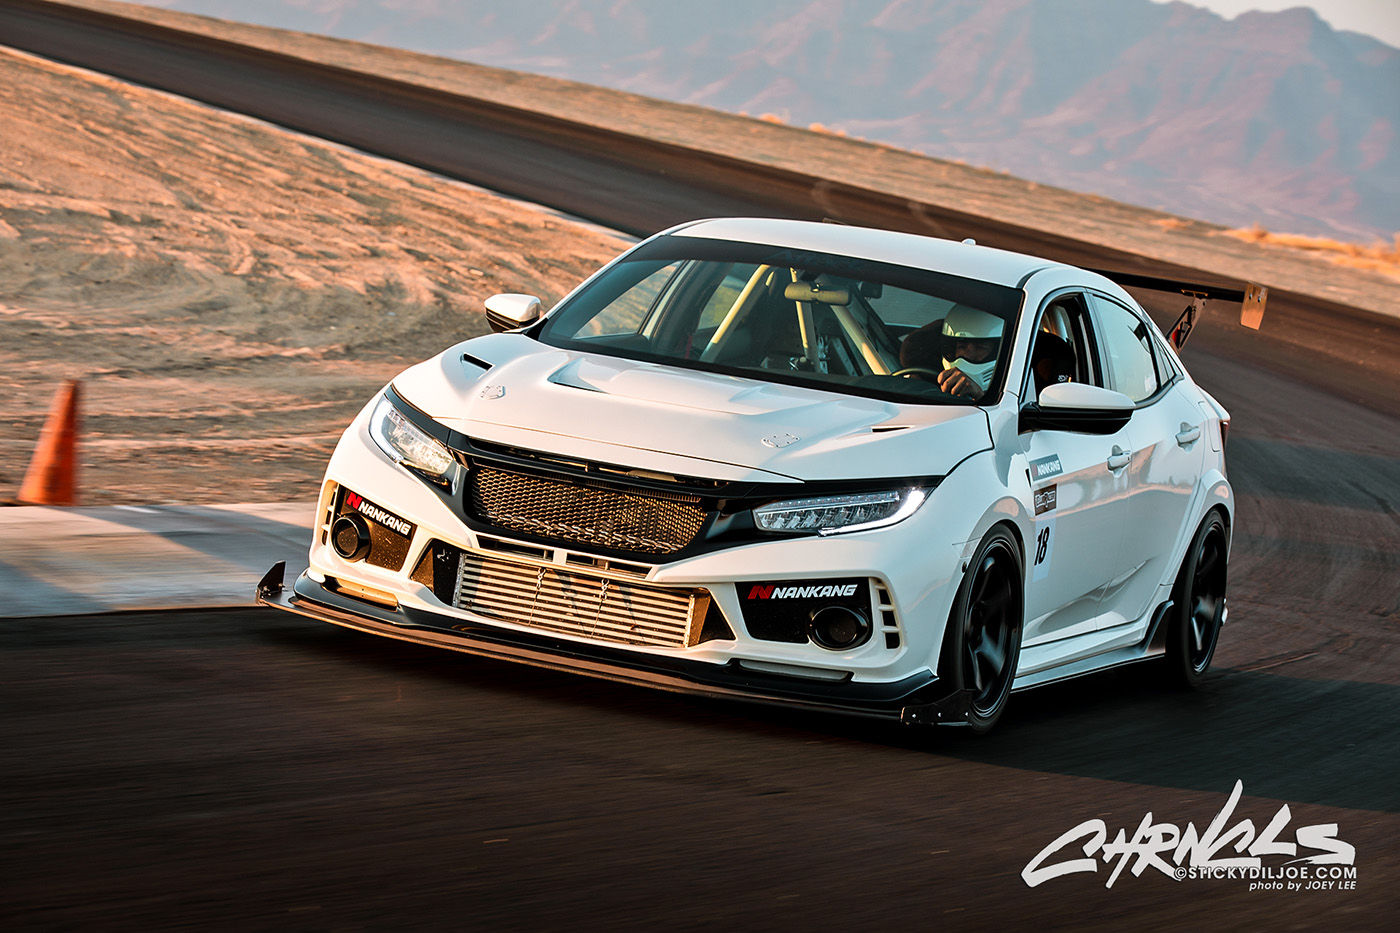 Jose Mejia's FK8 Civic Type R From Club Racer Reunion Weekend…